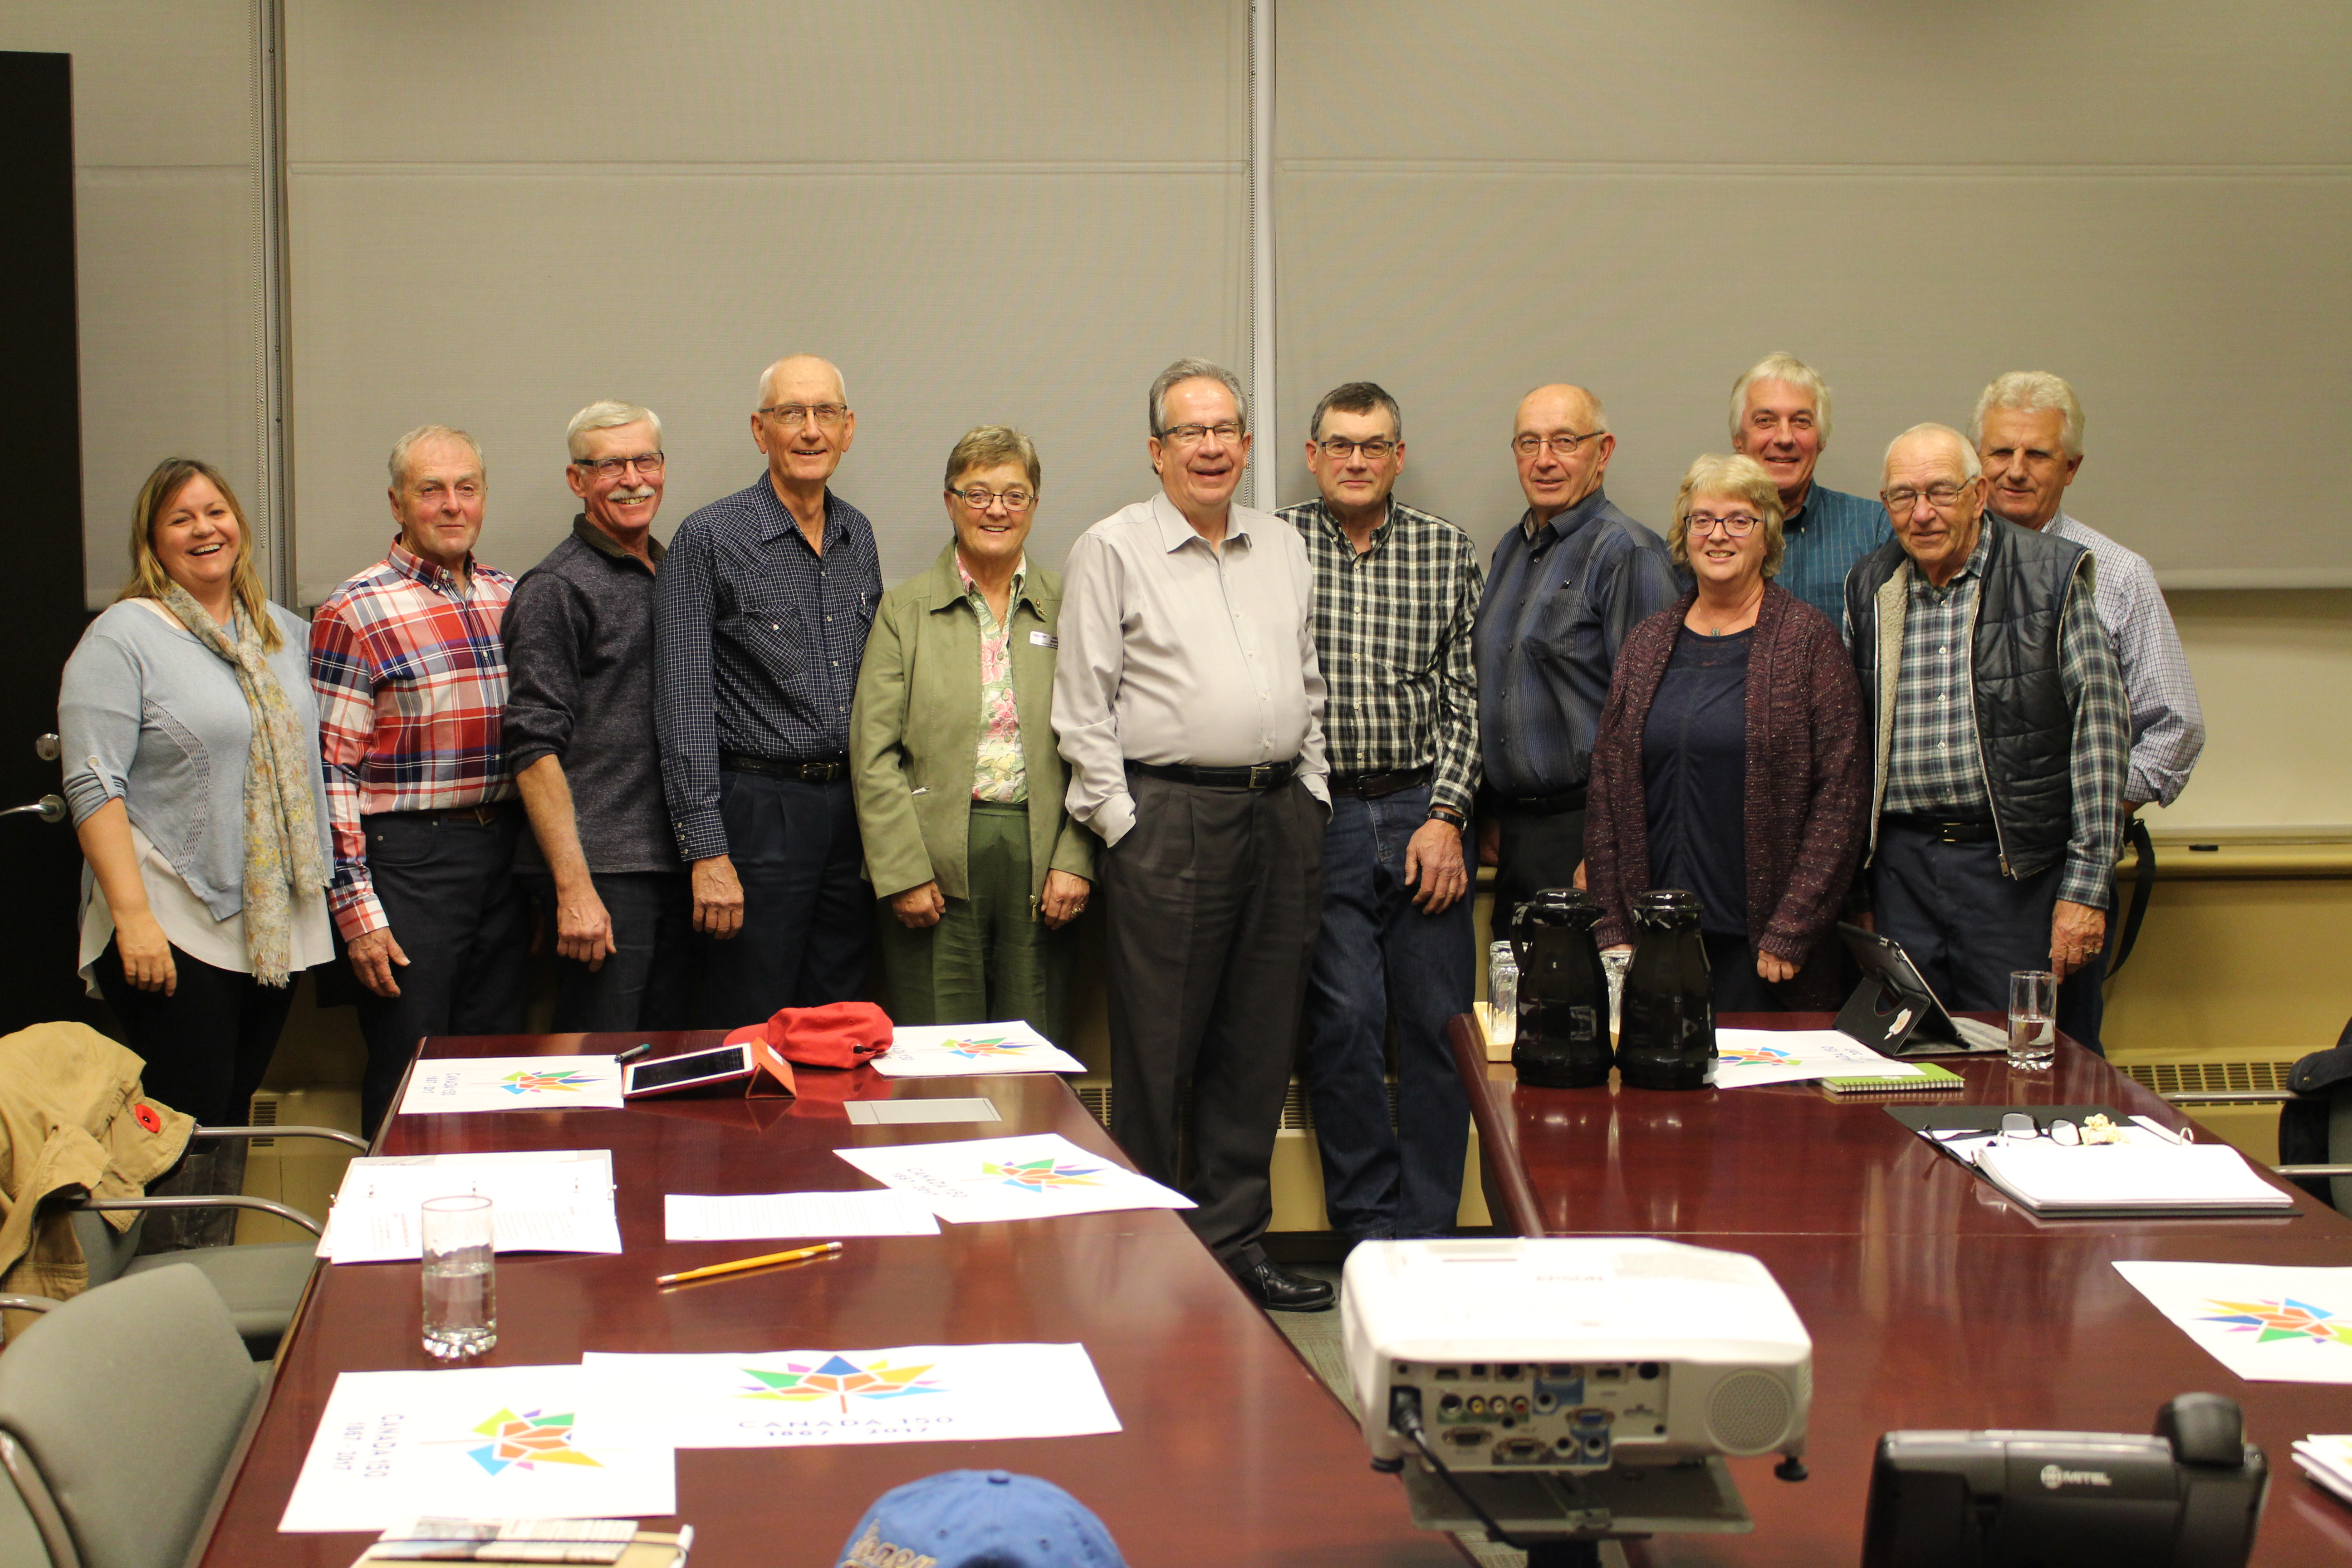 Minister Leal meets with the Agricultural Advisory Committee of Clarington. Pictured above (L to R): Jennifer Knox, John Cartwright, Eric Bowman, Ted Watson, Councillor Partner, Minister Leal, Tom Barrie, Don Rickard, Les Caswell, Richard Rekker, (front row) Brenda Metcalf, Elgin Greenham